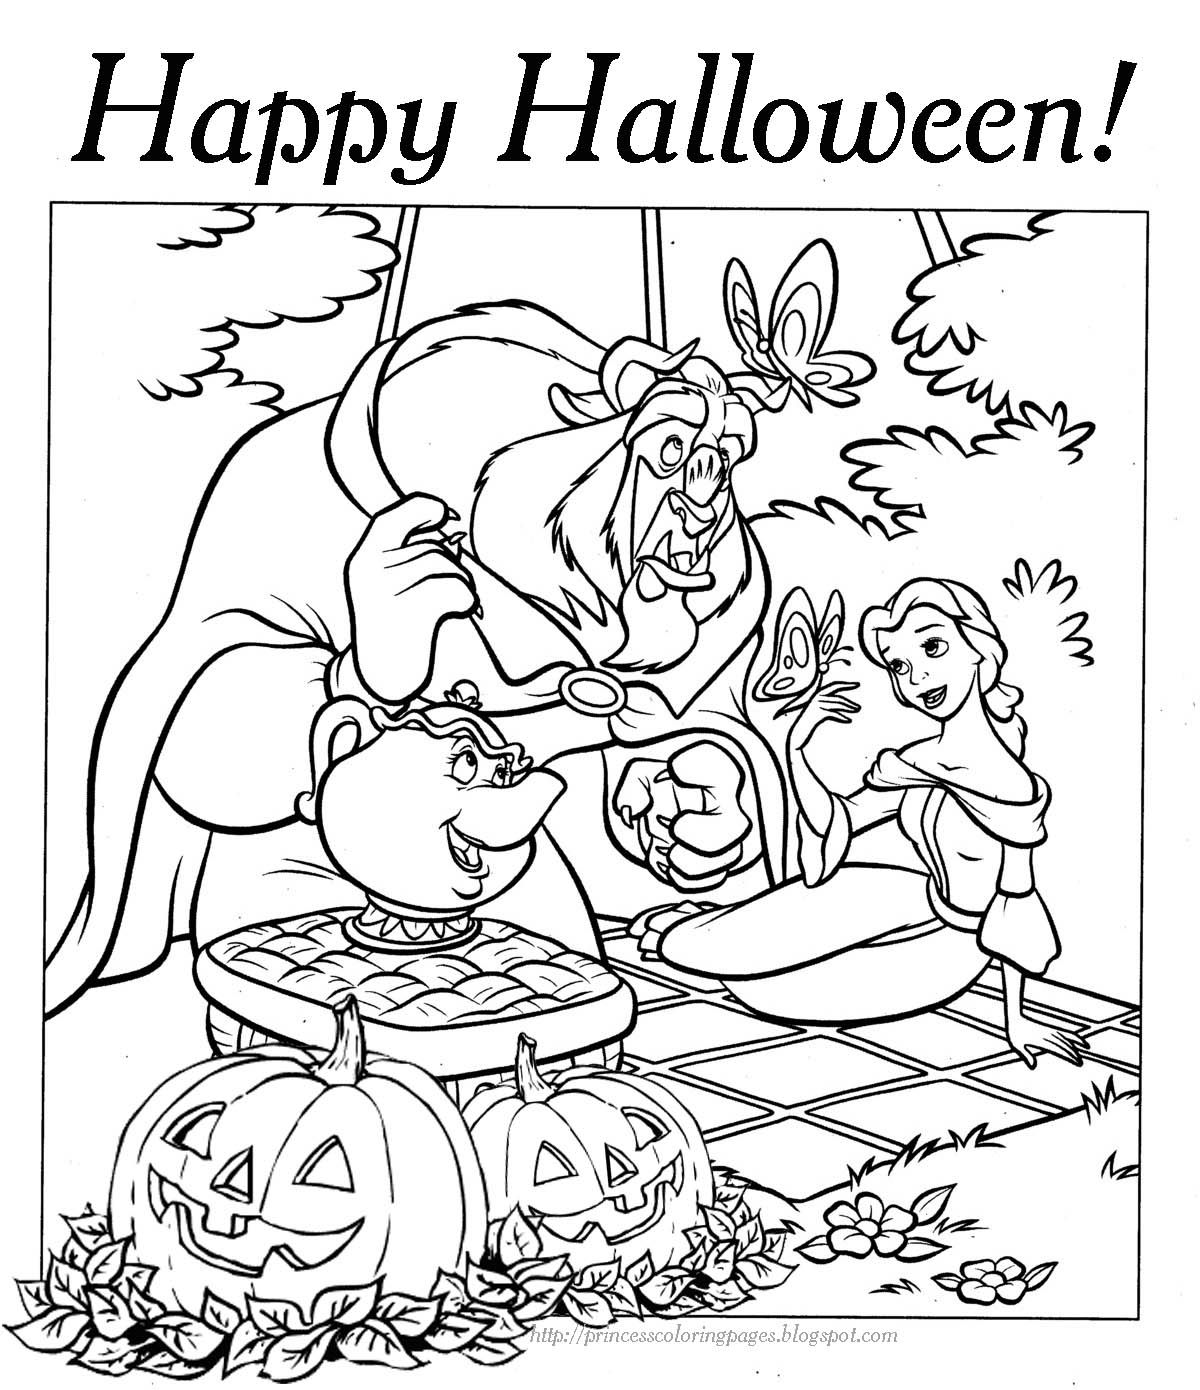 Halloween Coloring Pages | HALLOWEEN COLORING PAGE PRINCESS BELLE DISNEY